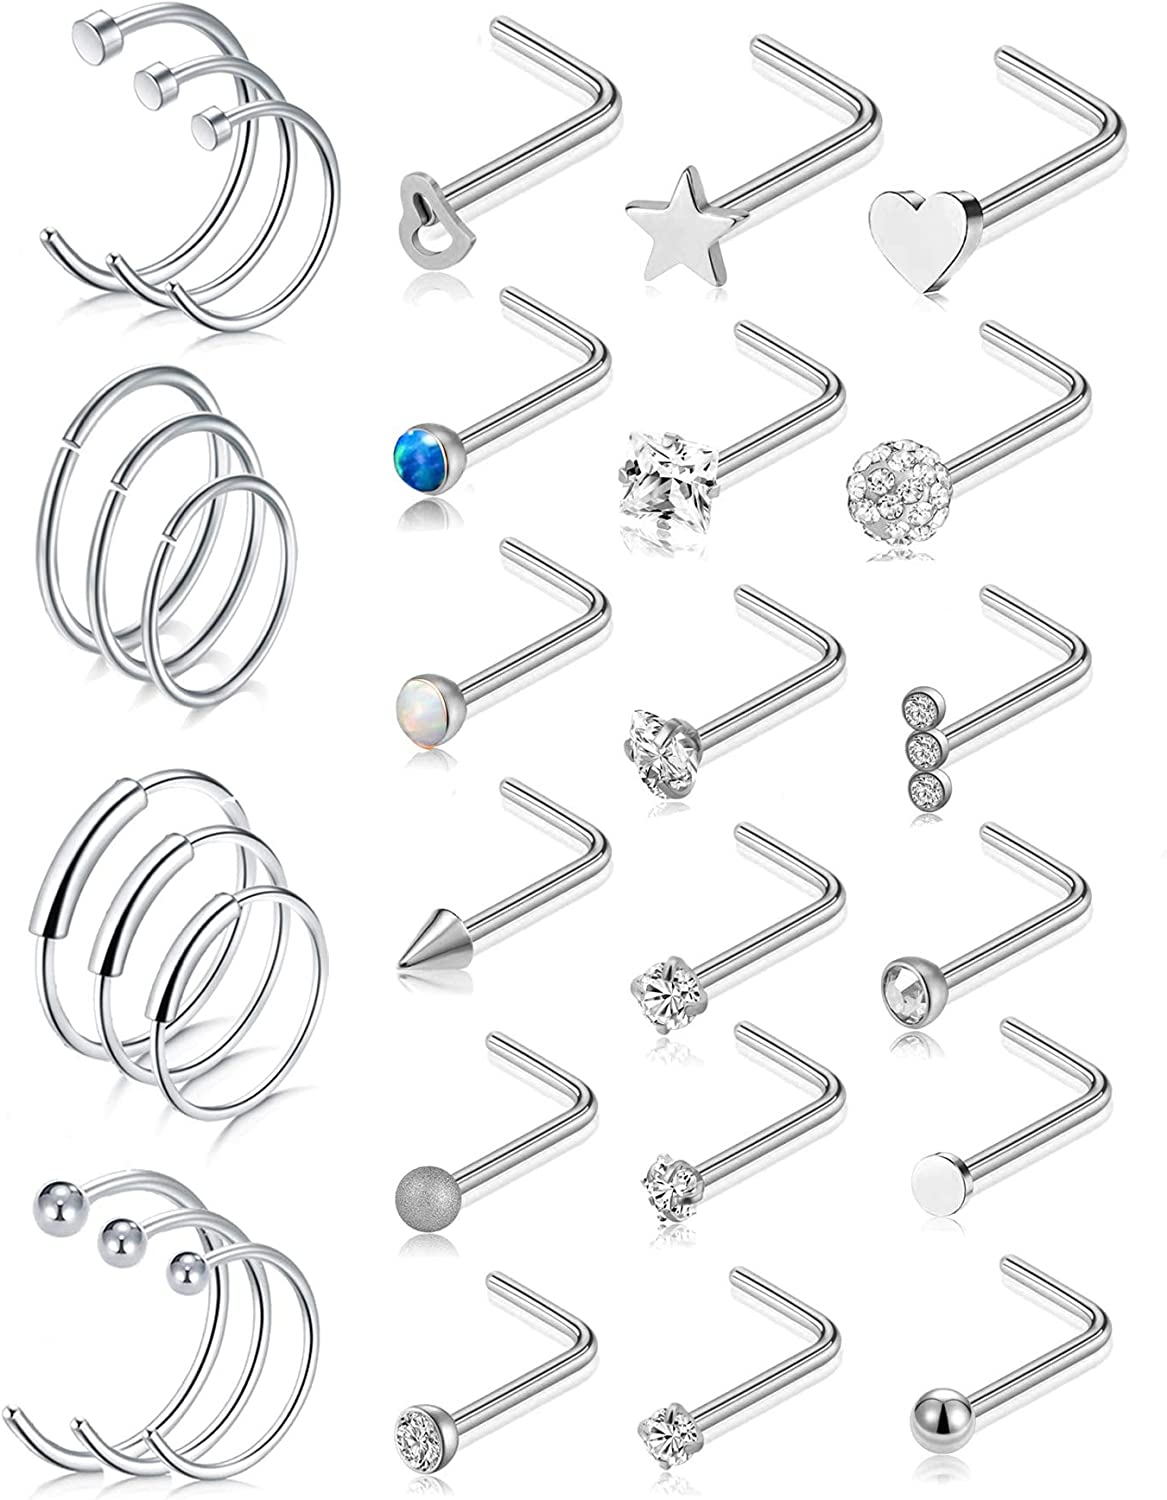 WAINIS 30 Pcs 316L Stainless Steel Nose Stud Ring Nose Hoop Ring Set 20G L-Shape Stud Nose Piercing Body Jewelry Set